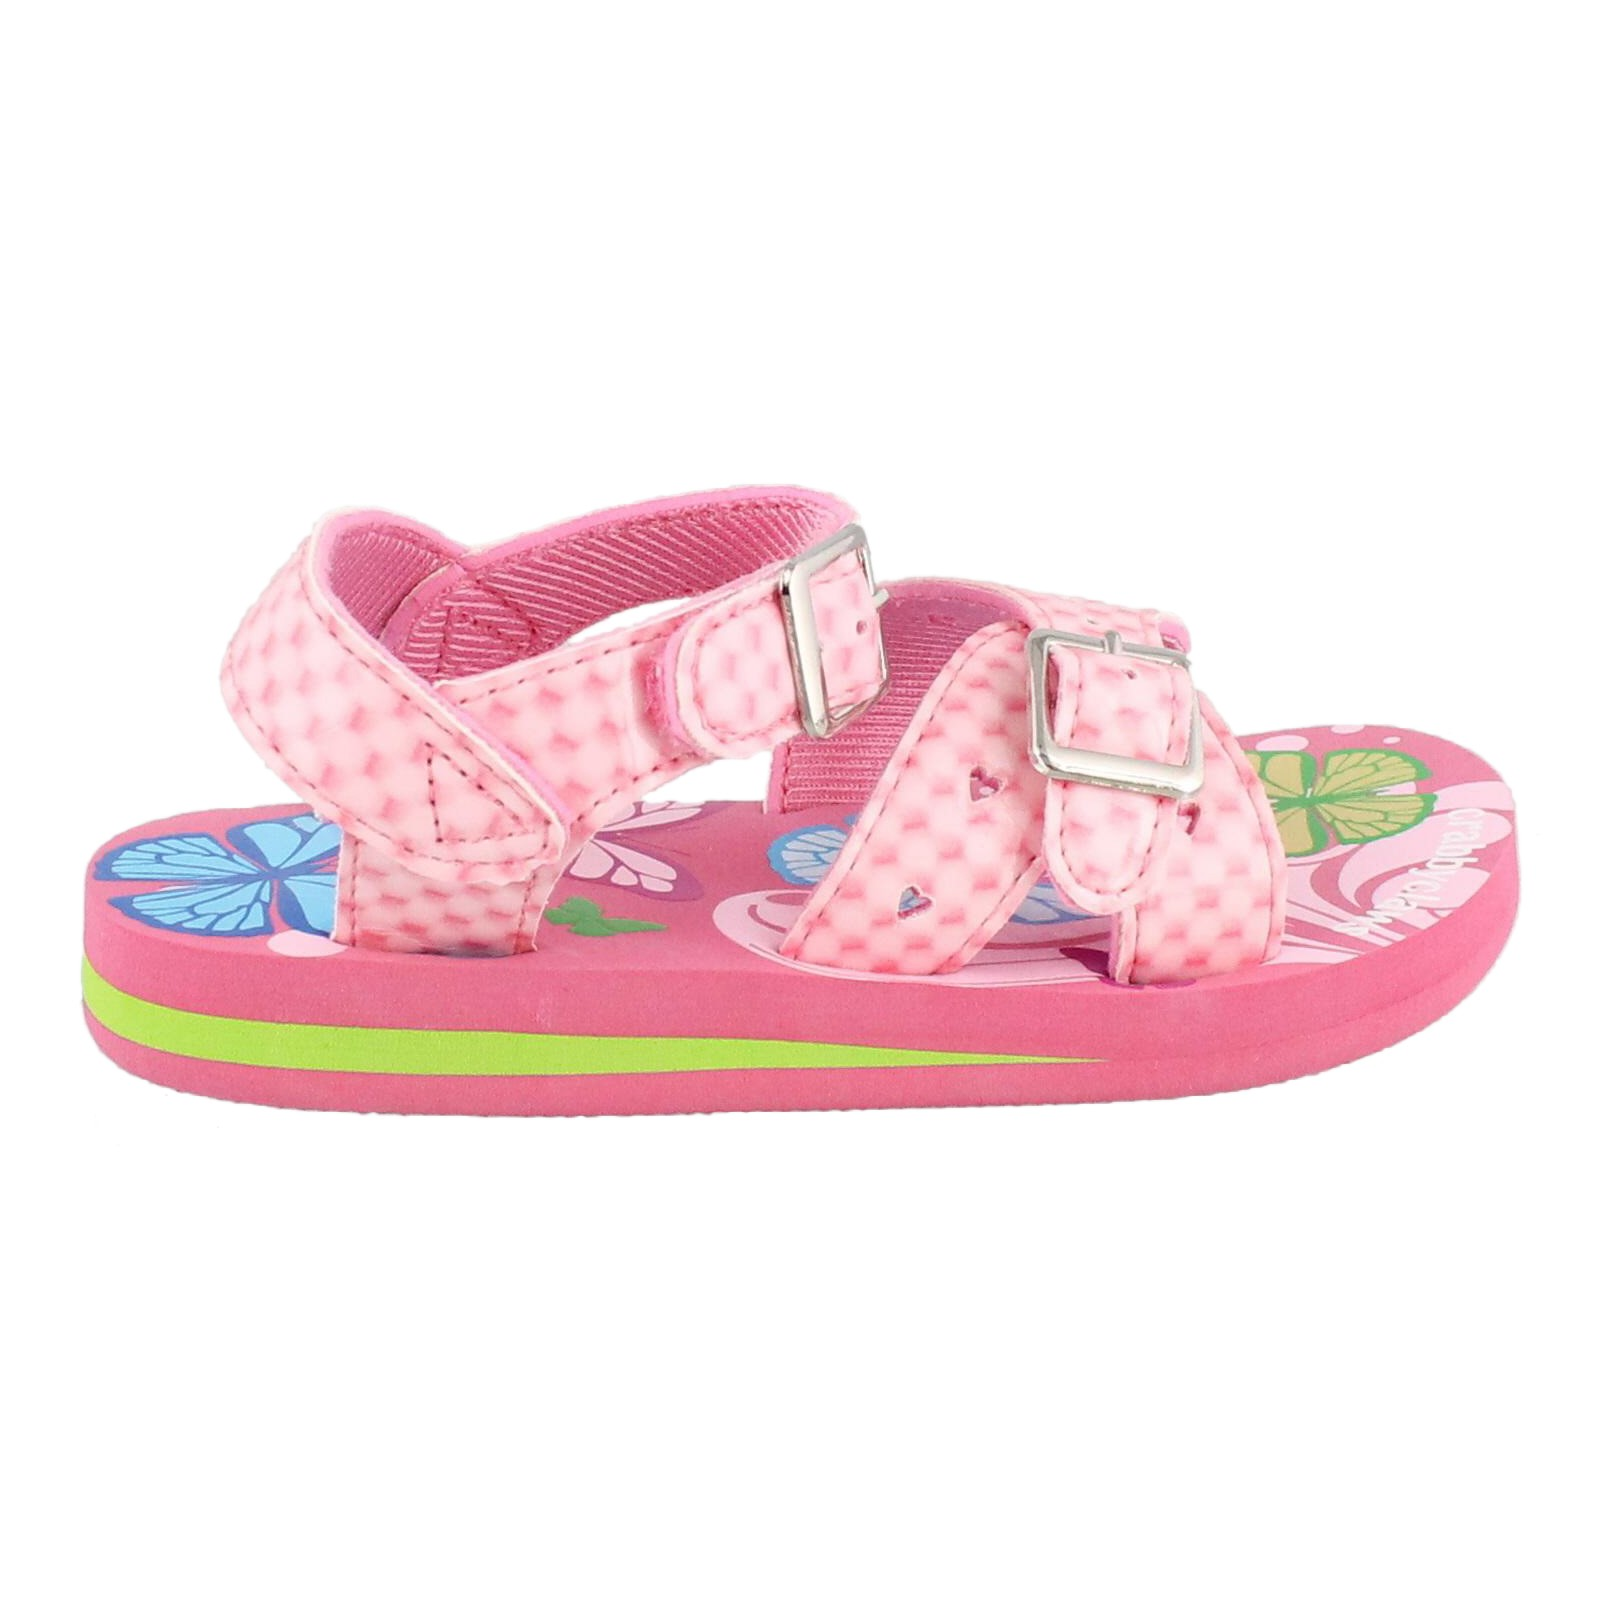 Girl's Crabbyclaws, Butterfly Sandal